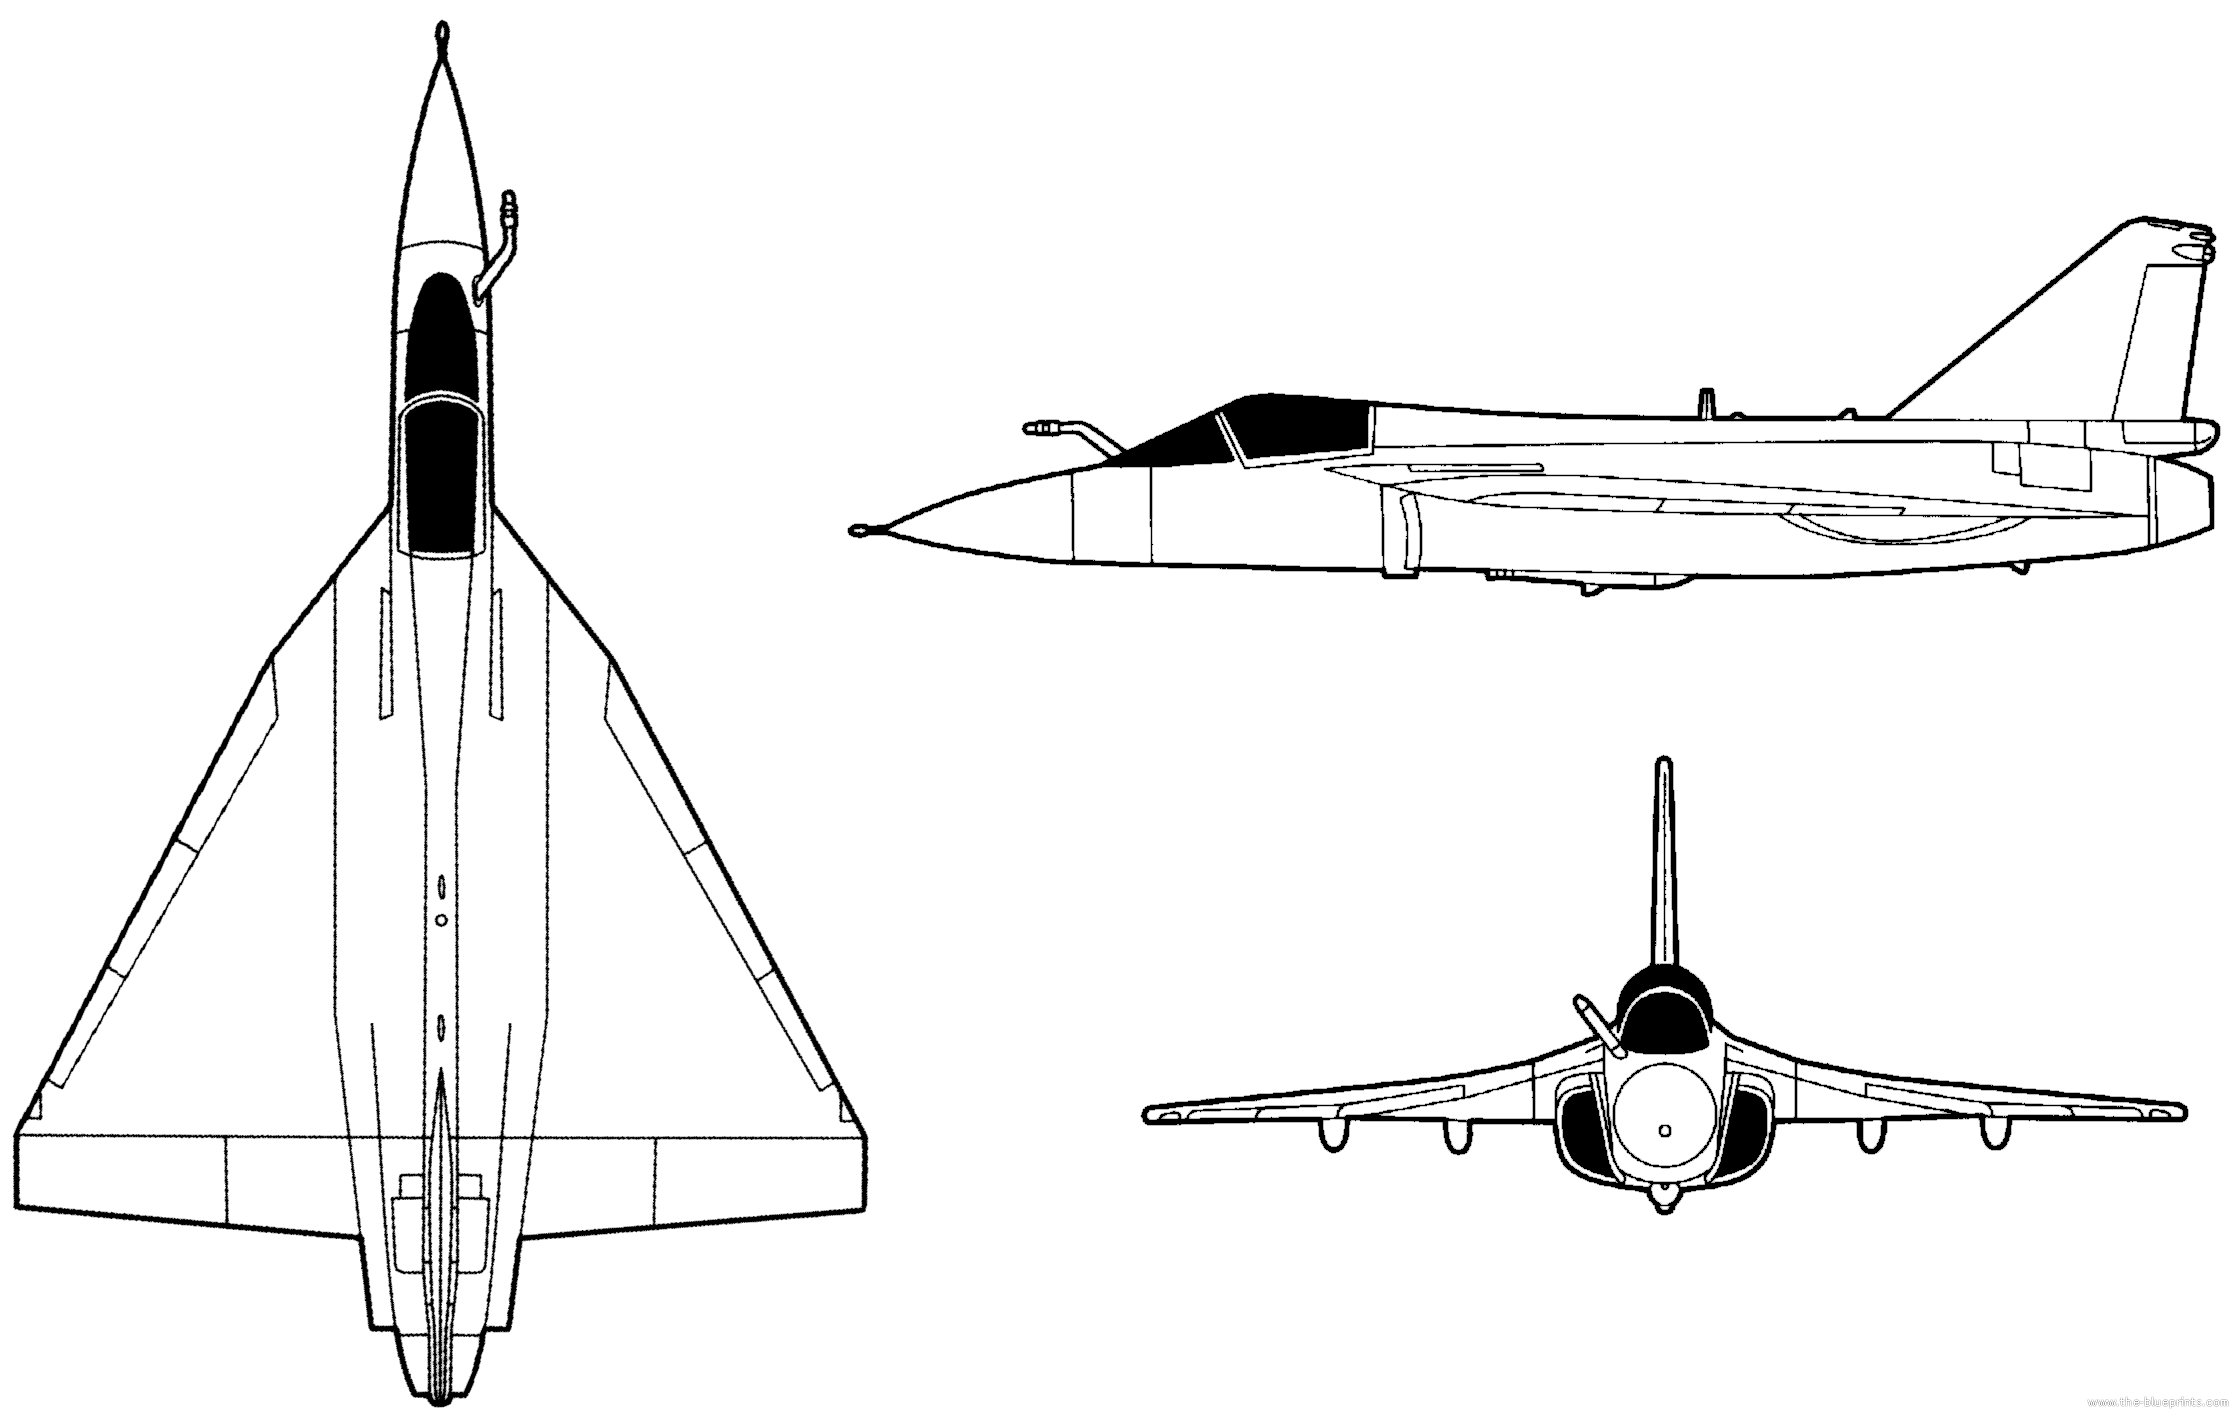 the blueprints com blueprints modern airplanes modern h hal lca tejas light combat aircraft